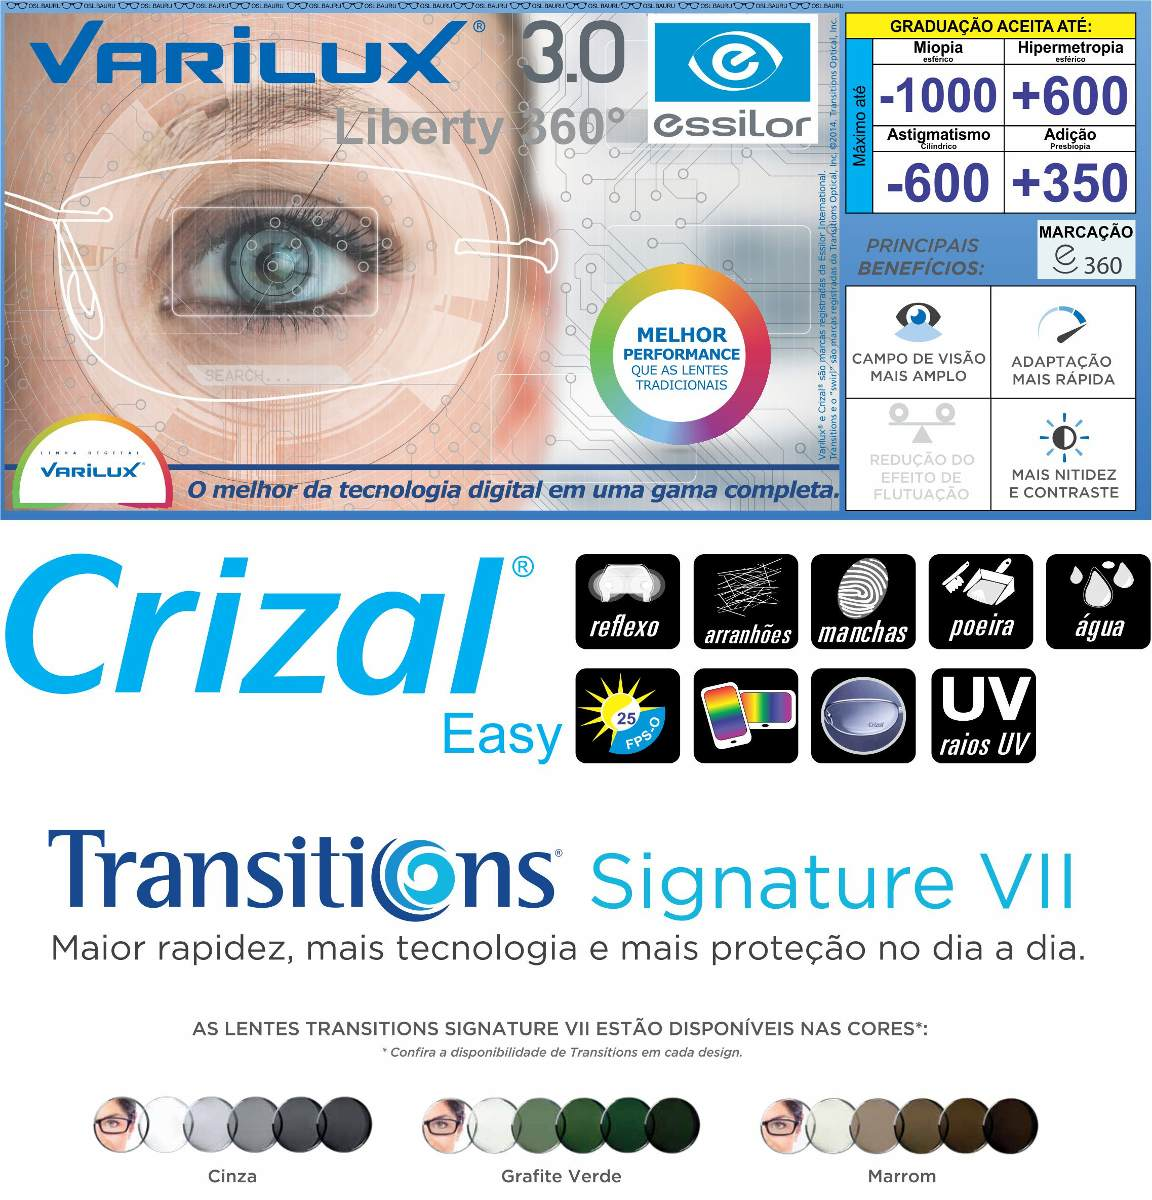 97021d805f299 Mf Varilux Liberty 360 (digital) Transitions Crizal Easy - R  1.252 ...